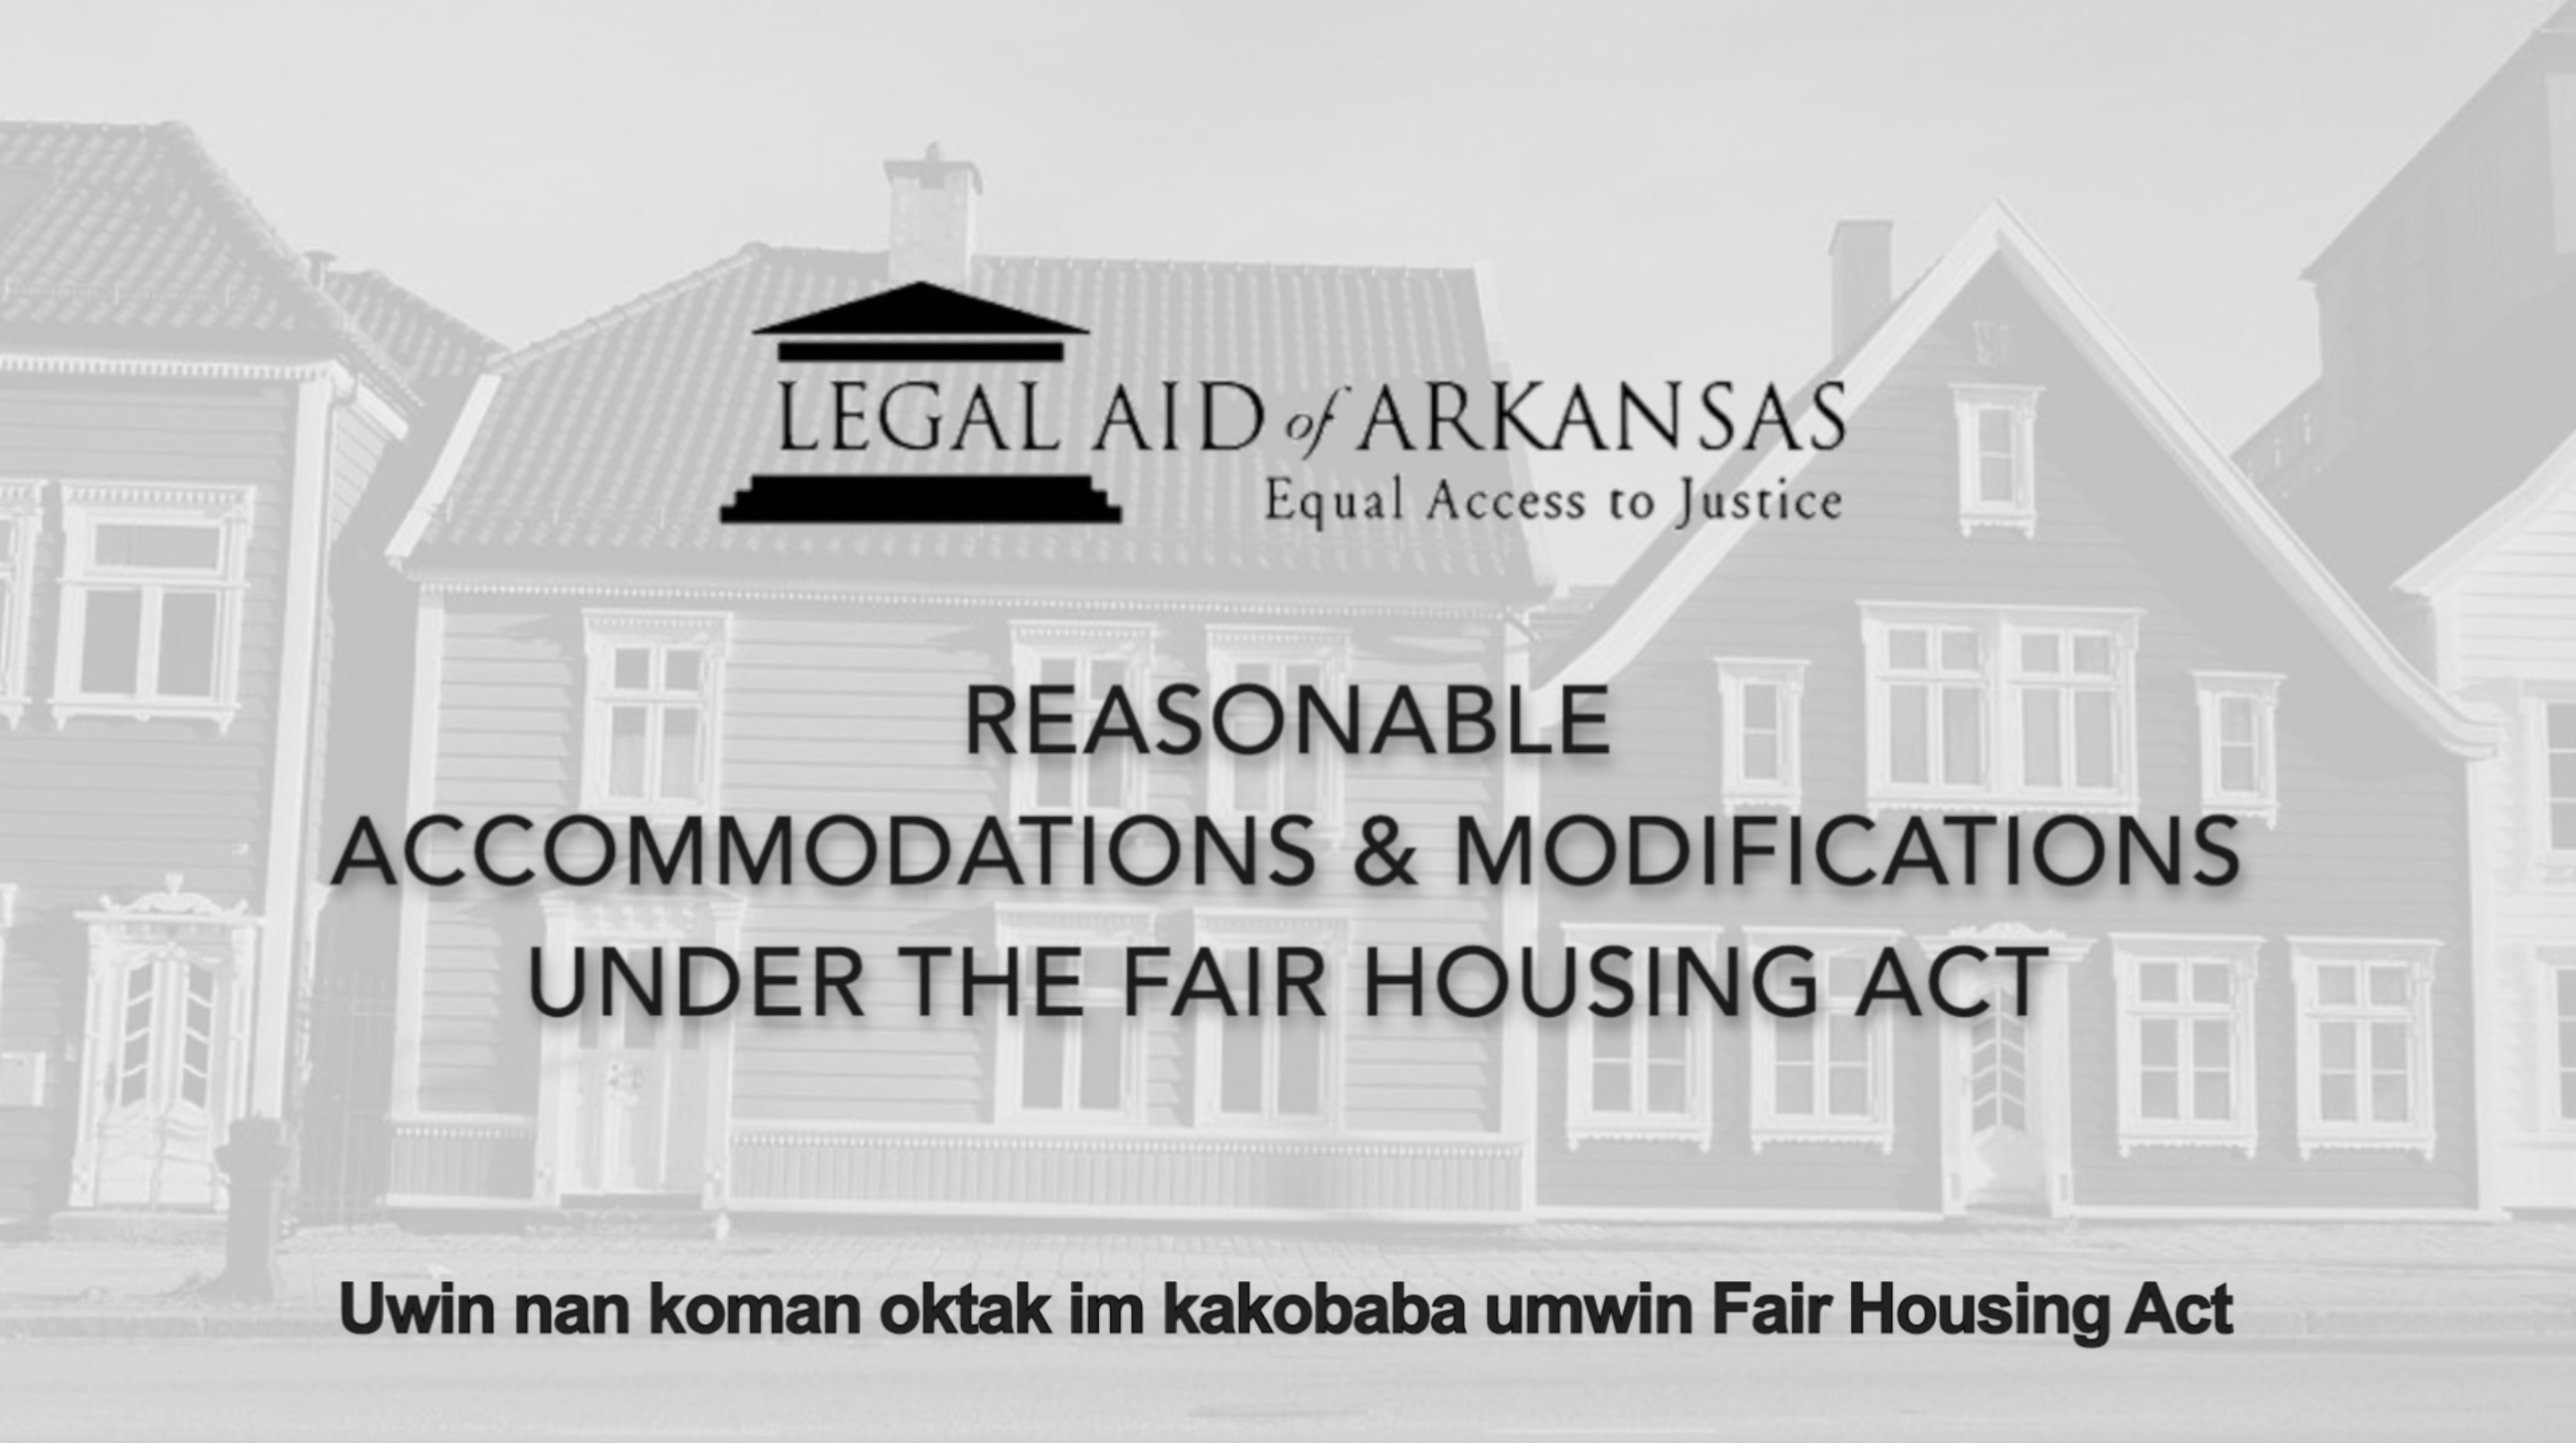 VIDEO - Uwin nan koman oktak im kakobaba umwin Fair Housing Act